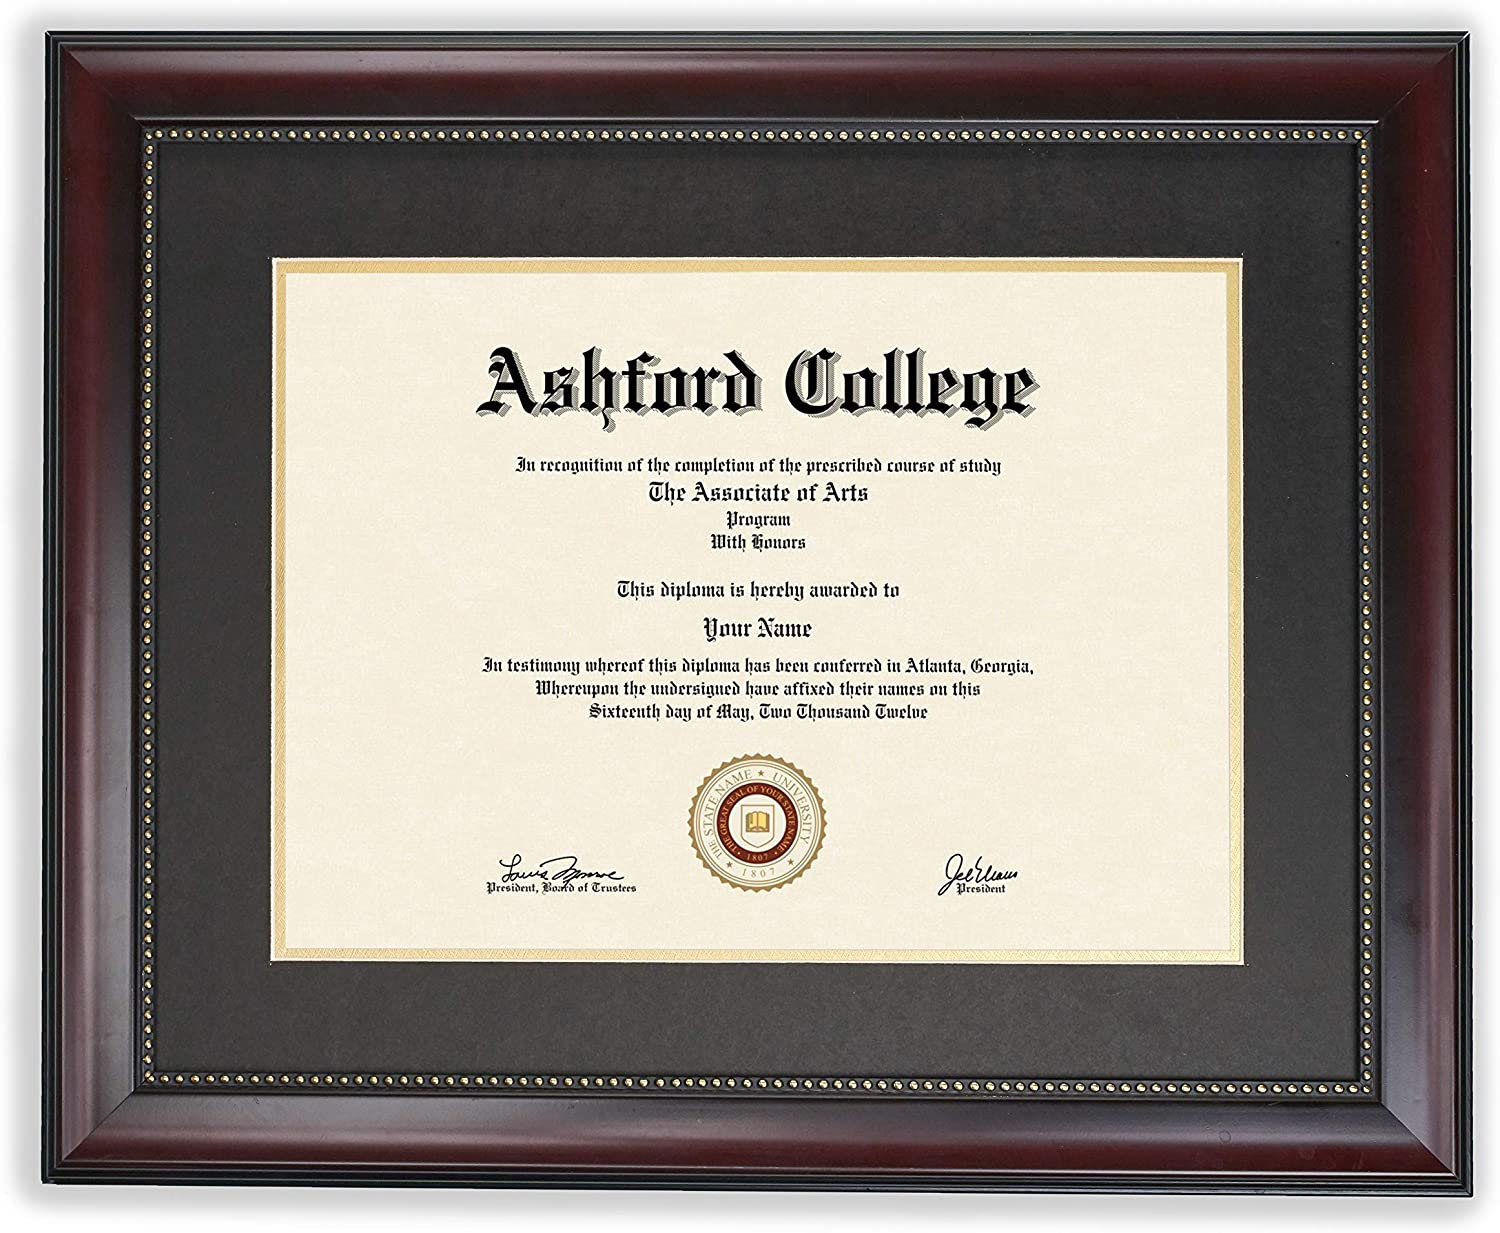 GreyBL 11x14 Diploma Max 76% OFF Frame - Certificate Displays Dallas Mall with Ma 8.5x11